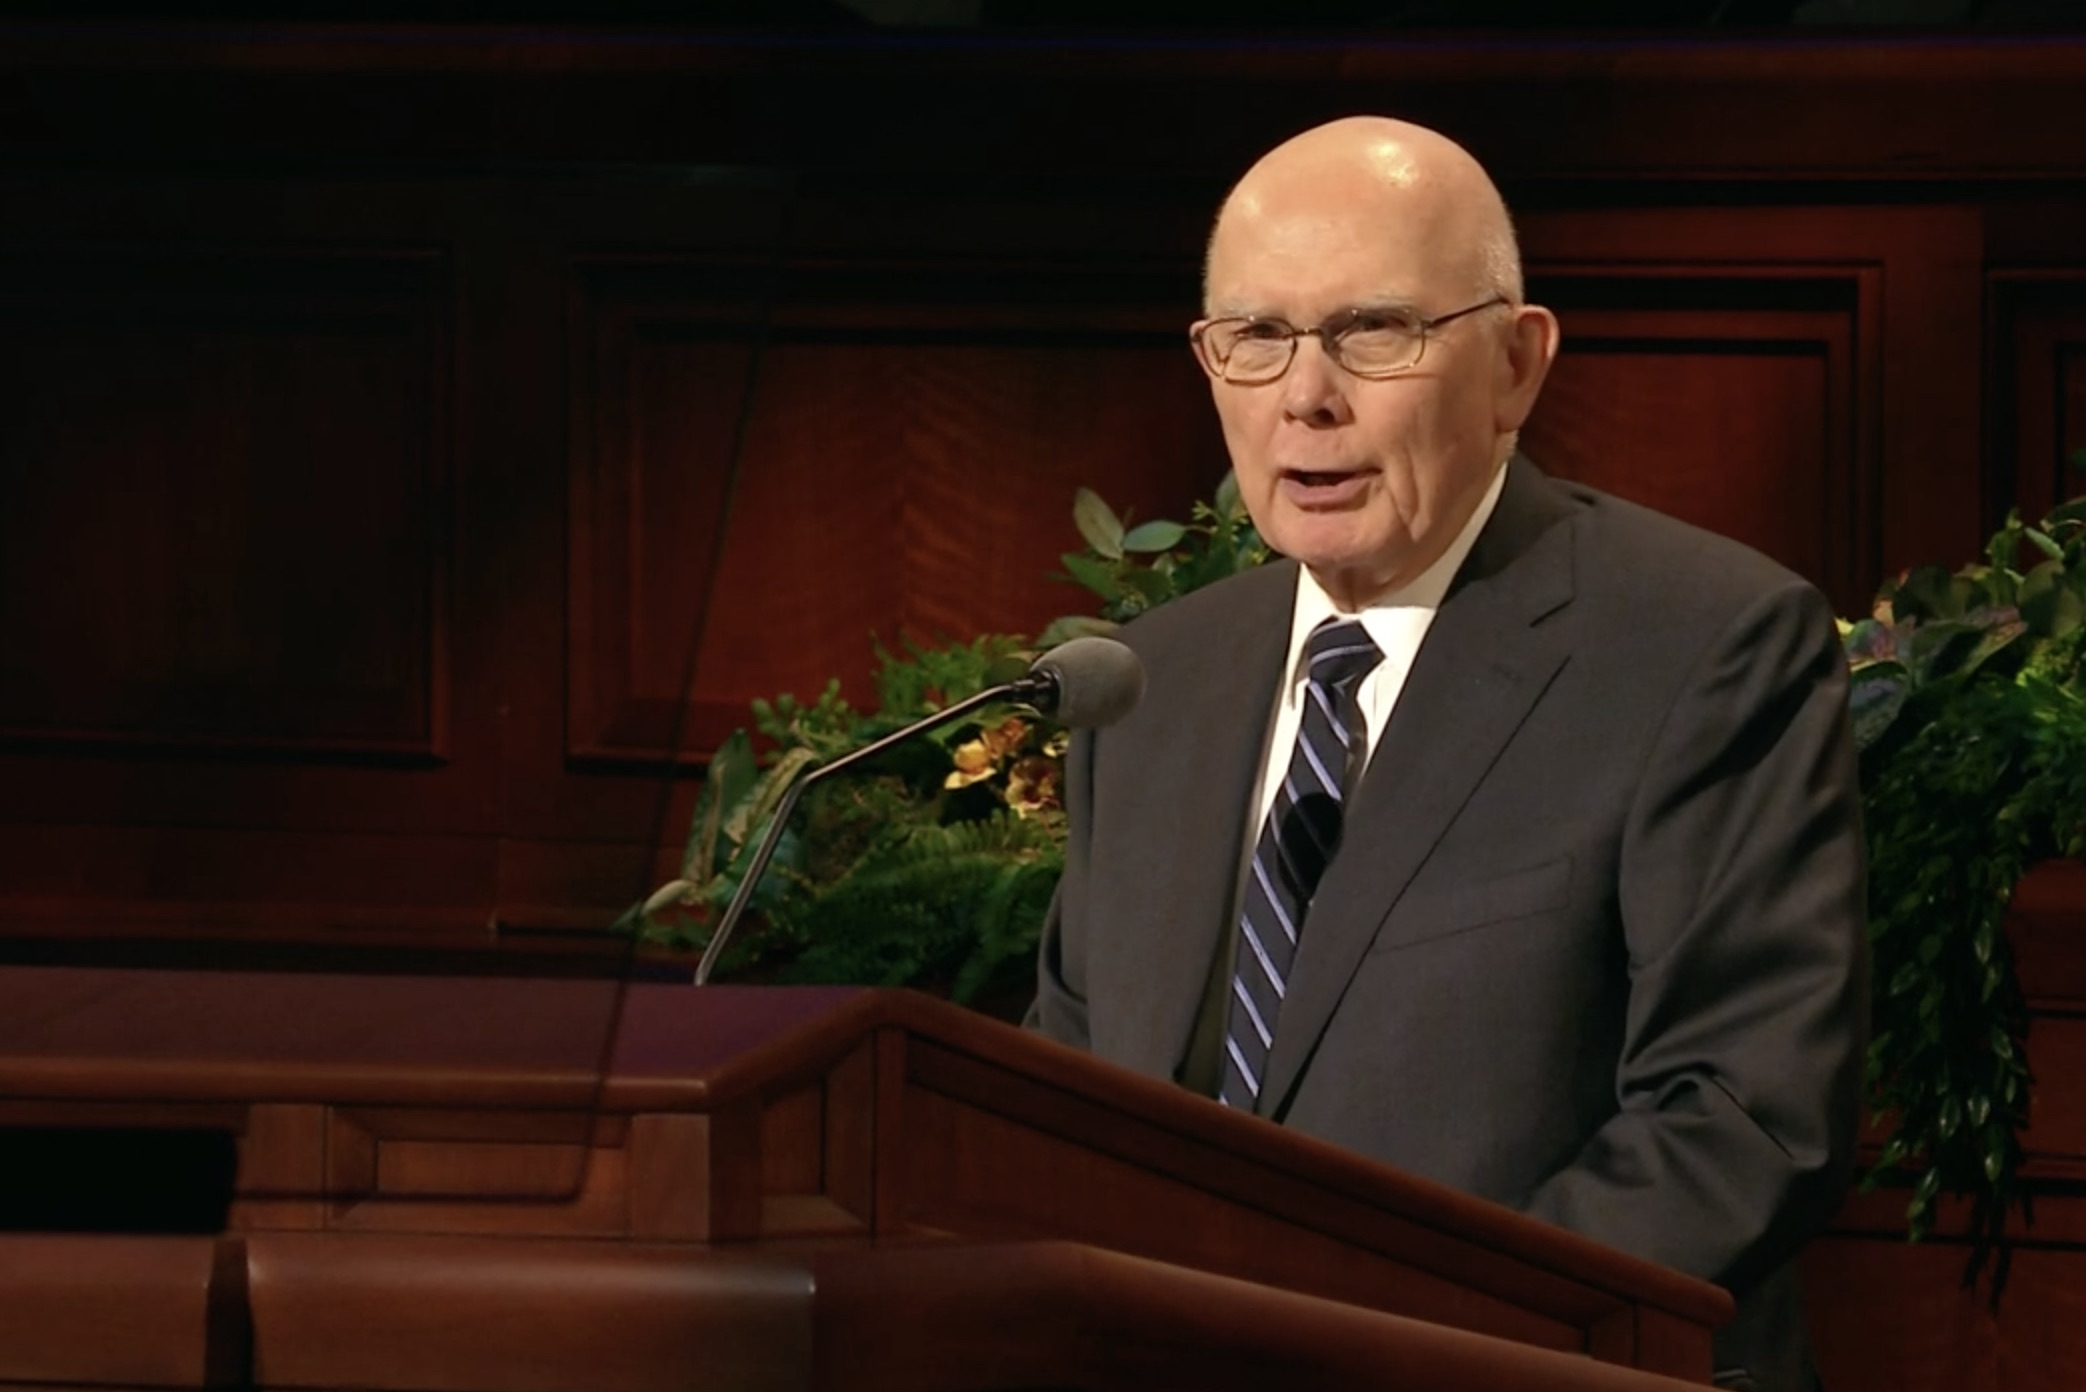 President Dallin H. Oaks, first counselor in the First Presidency, speaks during the priesthood session of the 189th Annual General Conference on April 6, 2019.